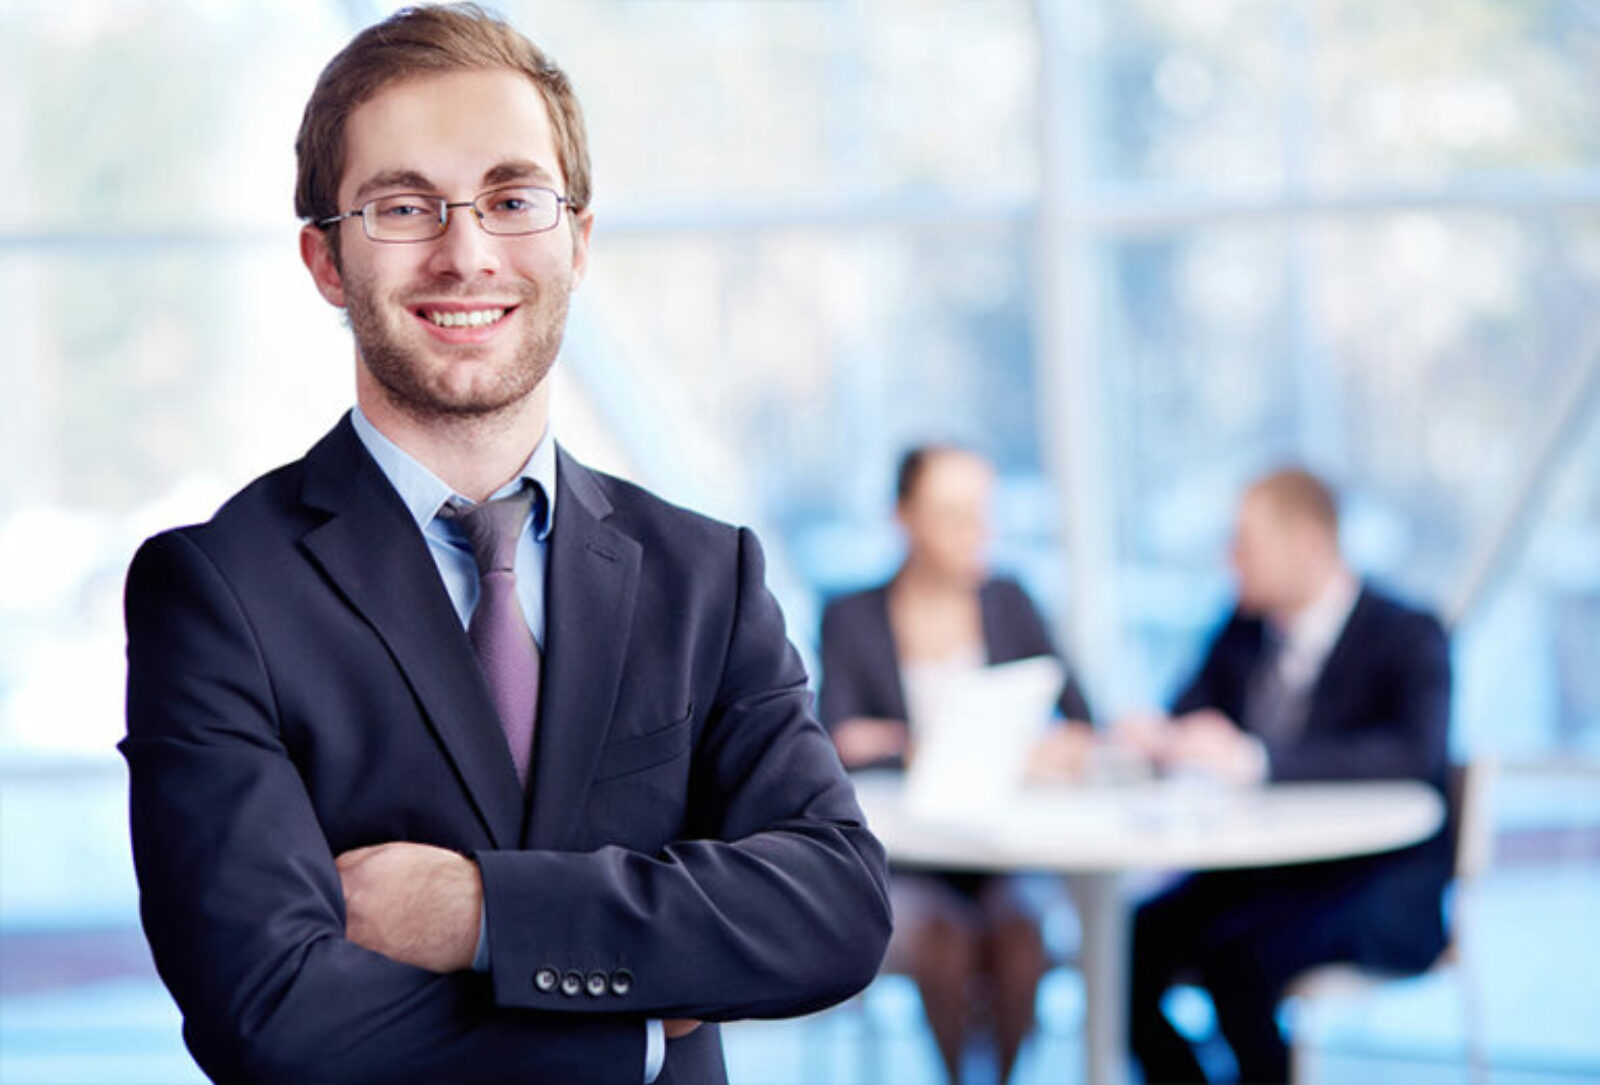 What are the Advantages of Marketing and Communication Degrees?